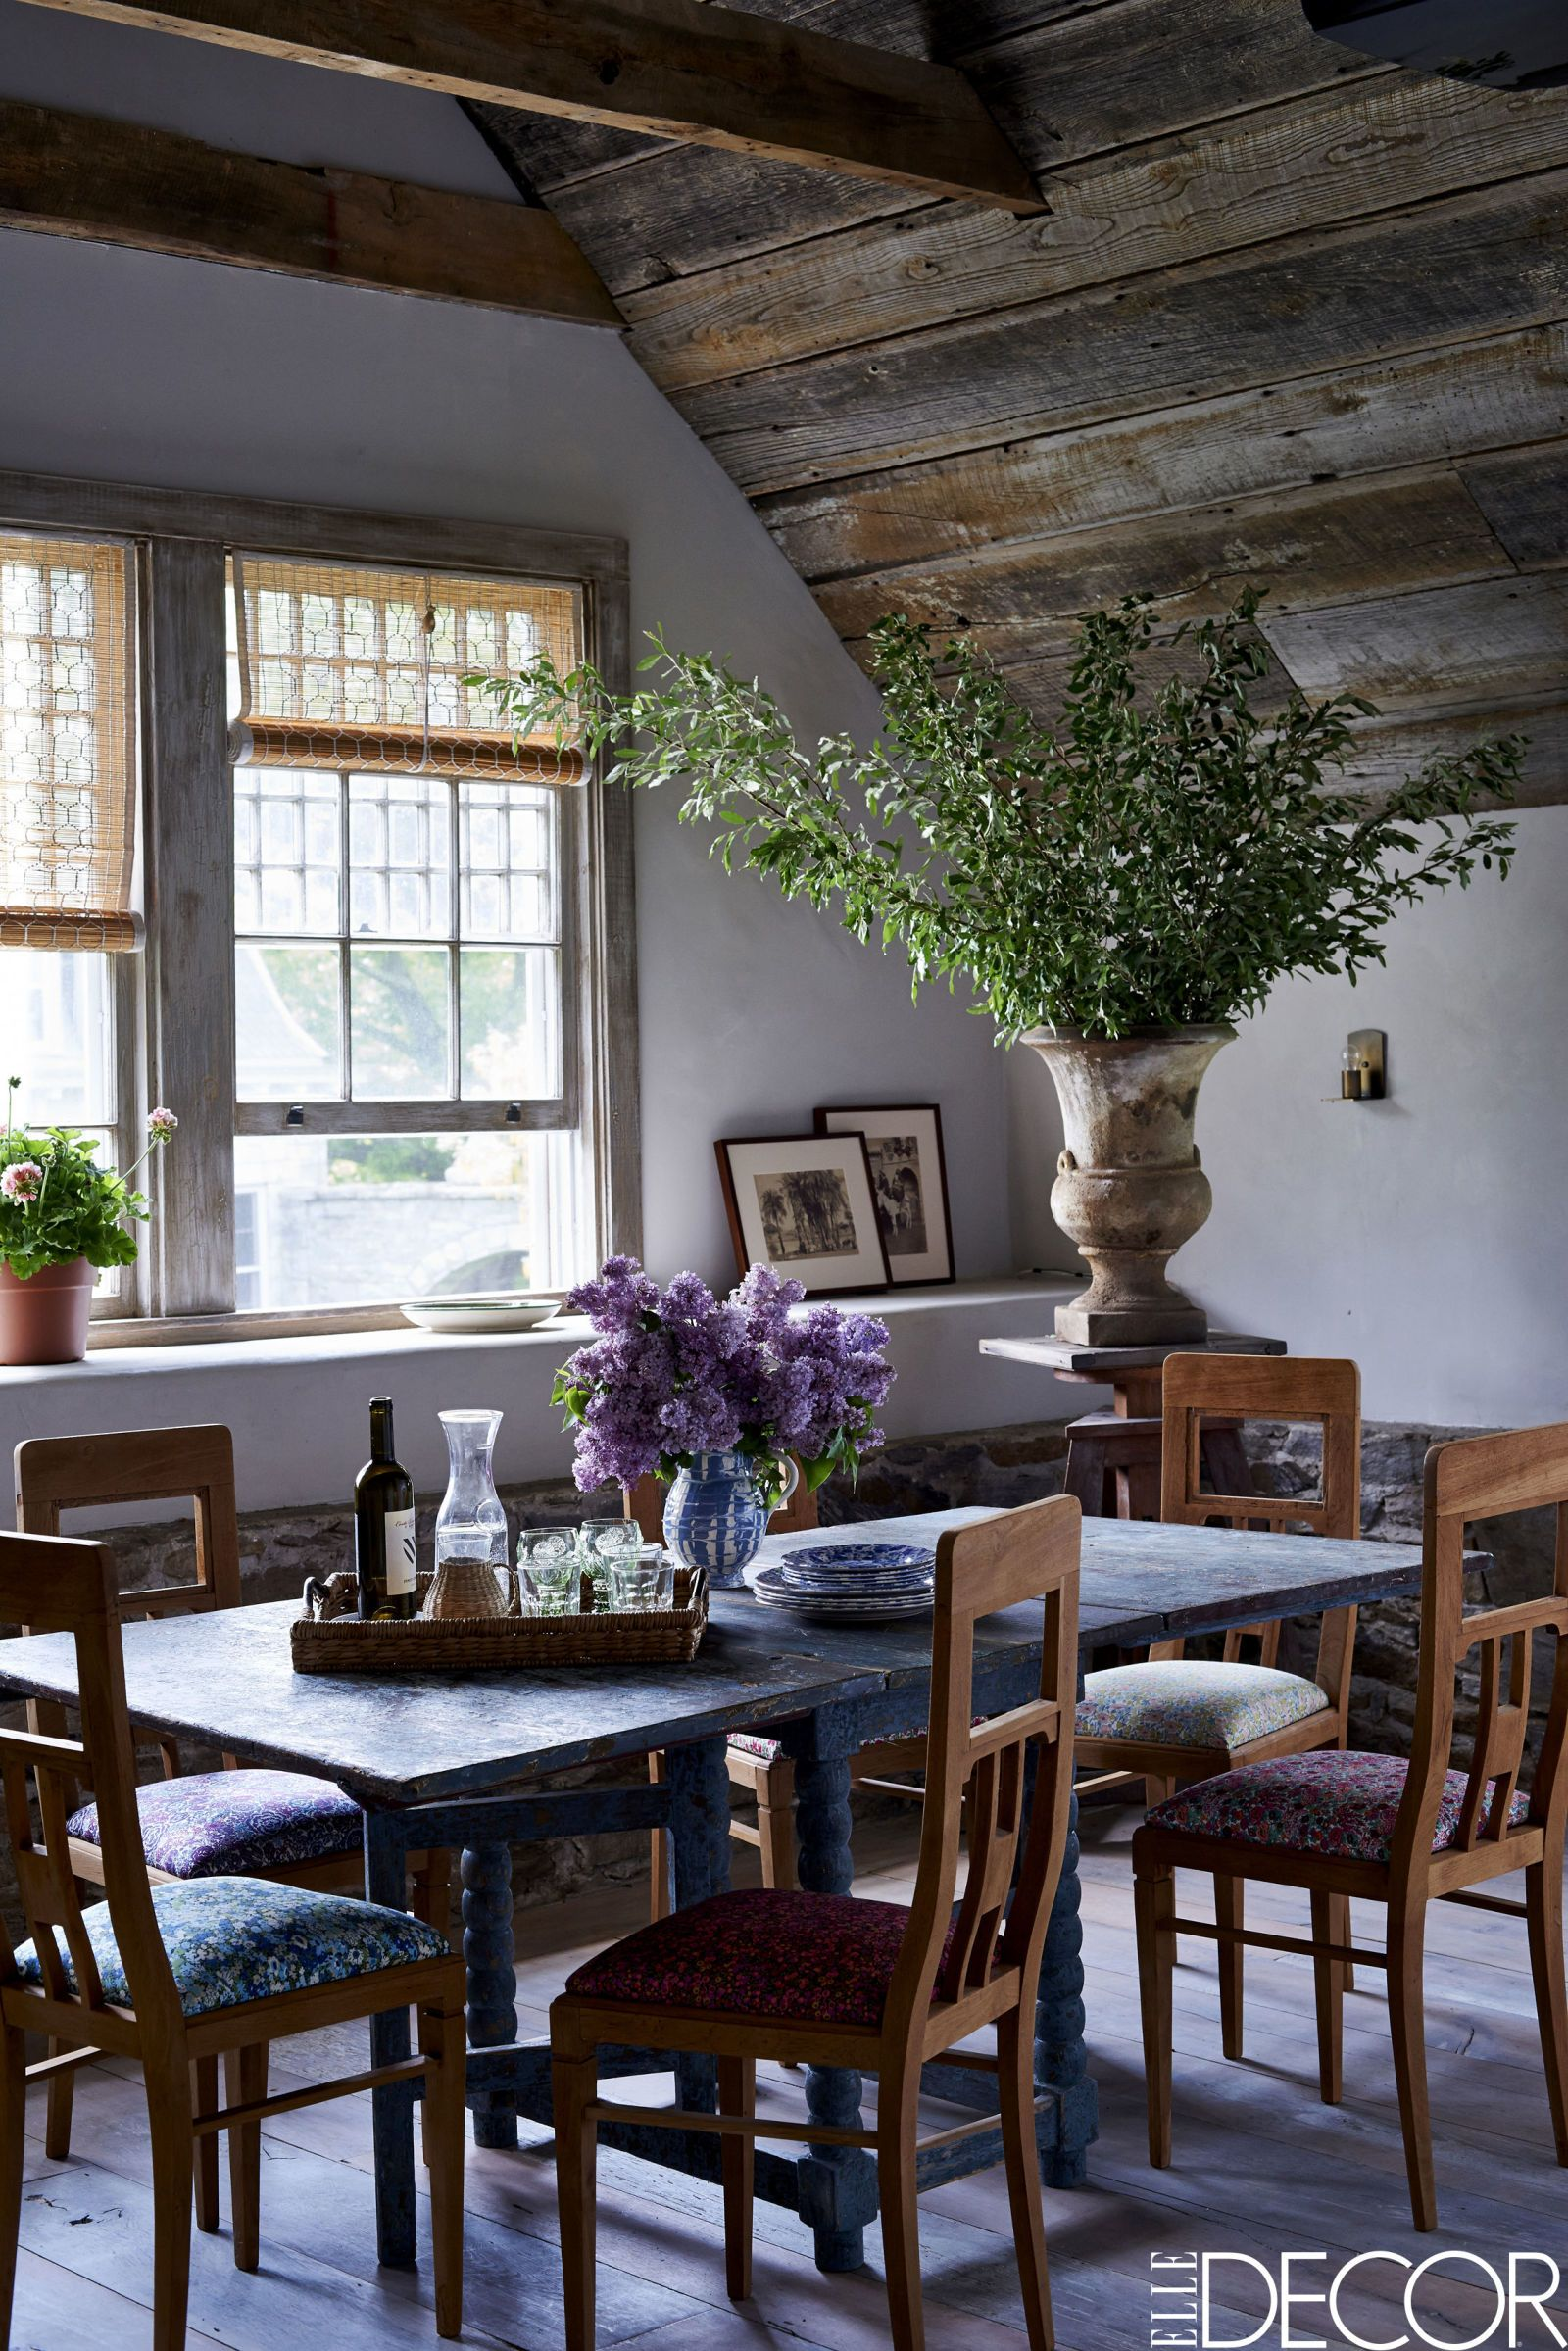 HOUSE TOUR An 1870s Carriage House Brimming With Historic Charm